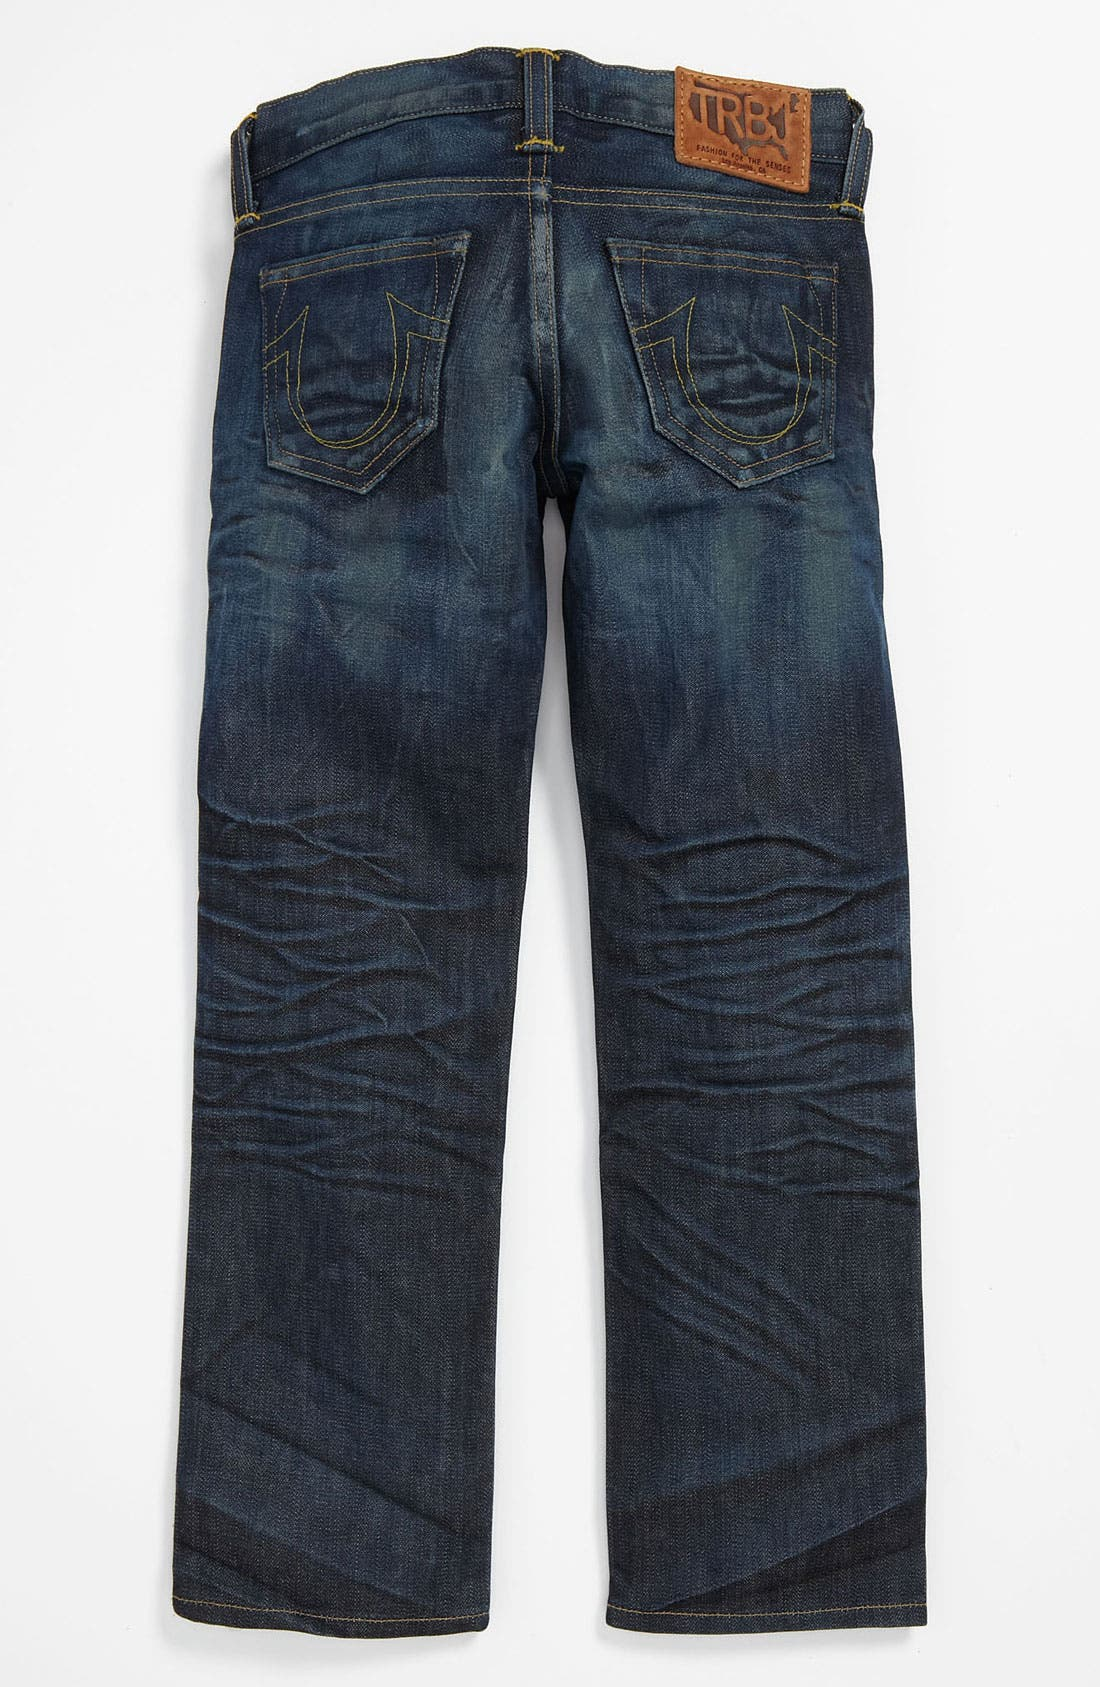 Main Image - True Religion Brand Jeans 'Herbie Phoenix' Jeans (Little Boys)